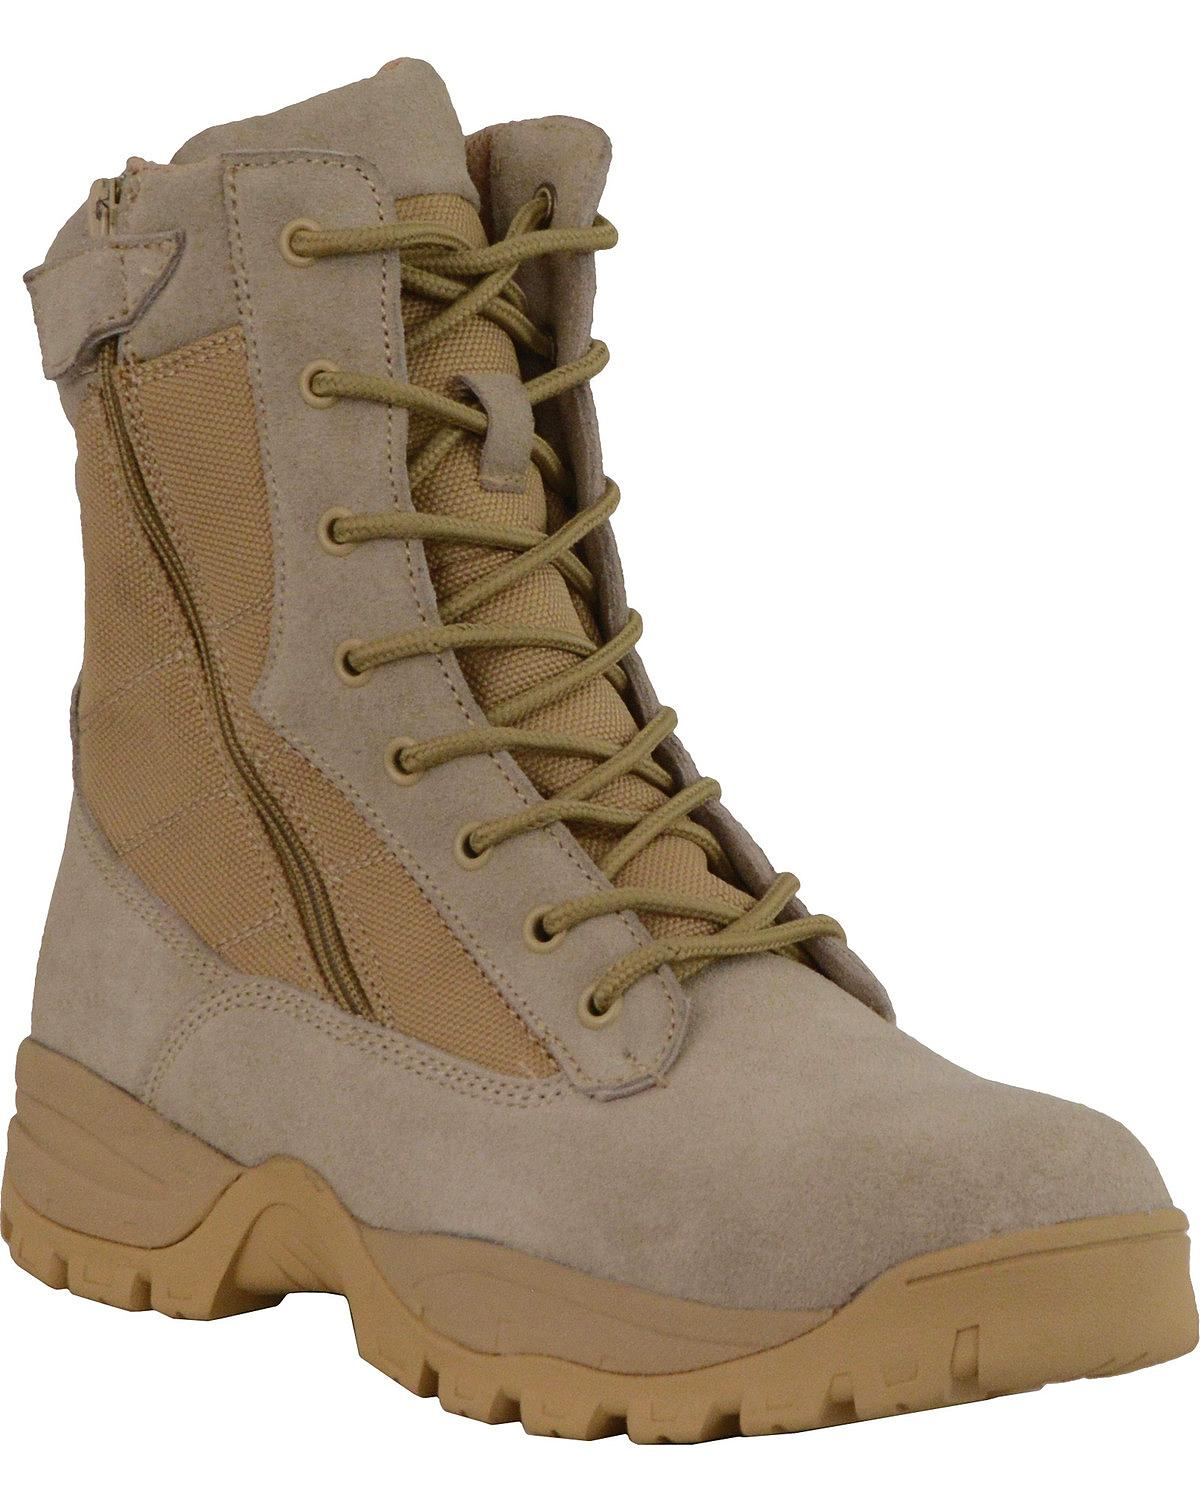 Milwaukee Leather Mens 9in Desert Sand Leather Tactical Boots with Side Zippers